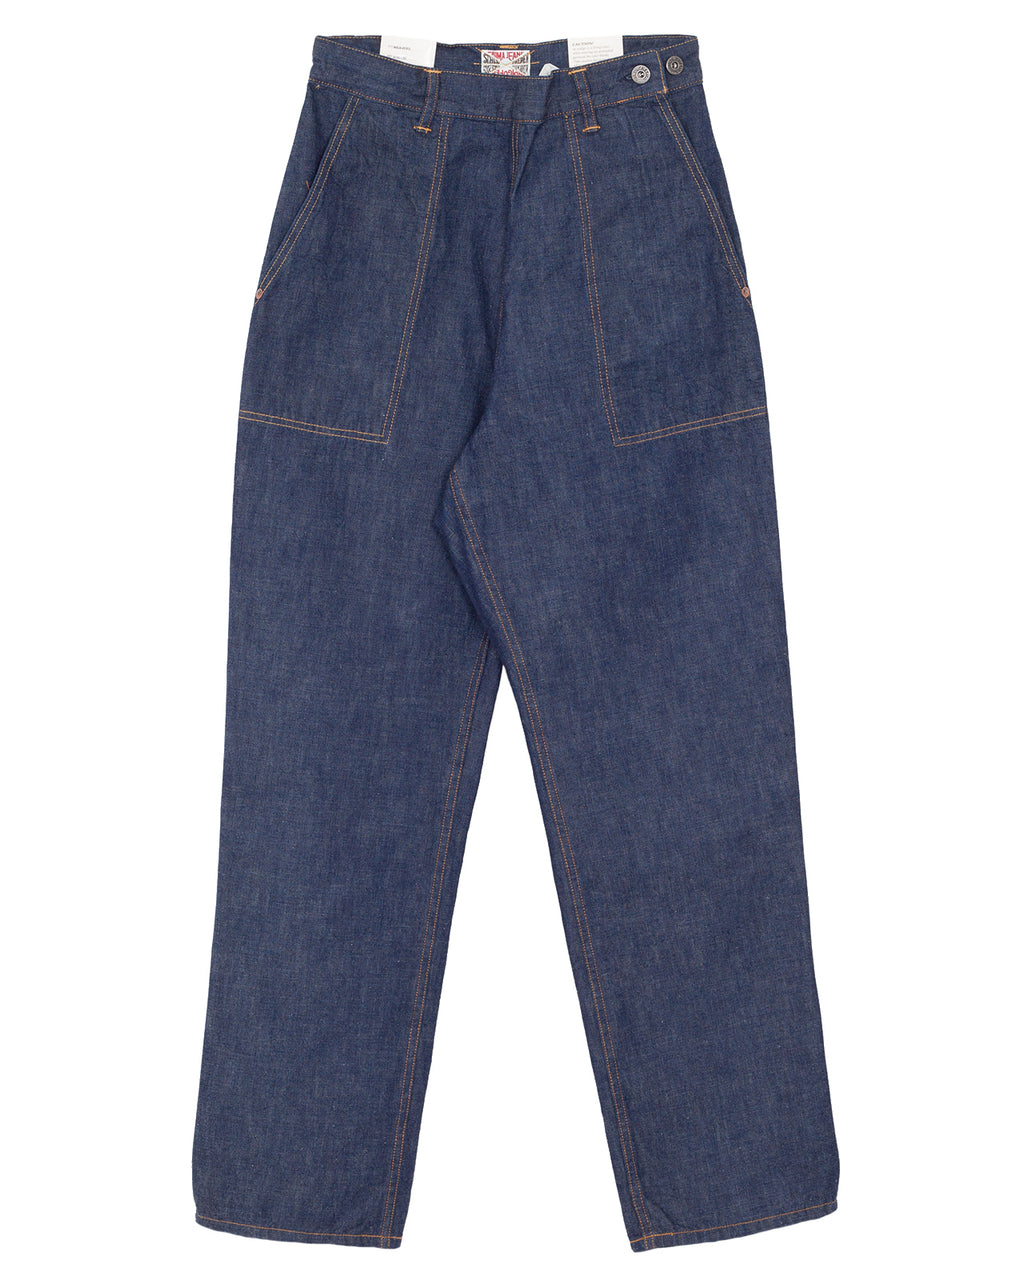 Indigofera x Miriam Parkman, Weavers Pants, 40s Navy Denim